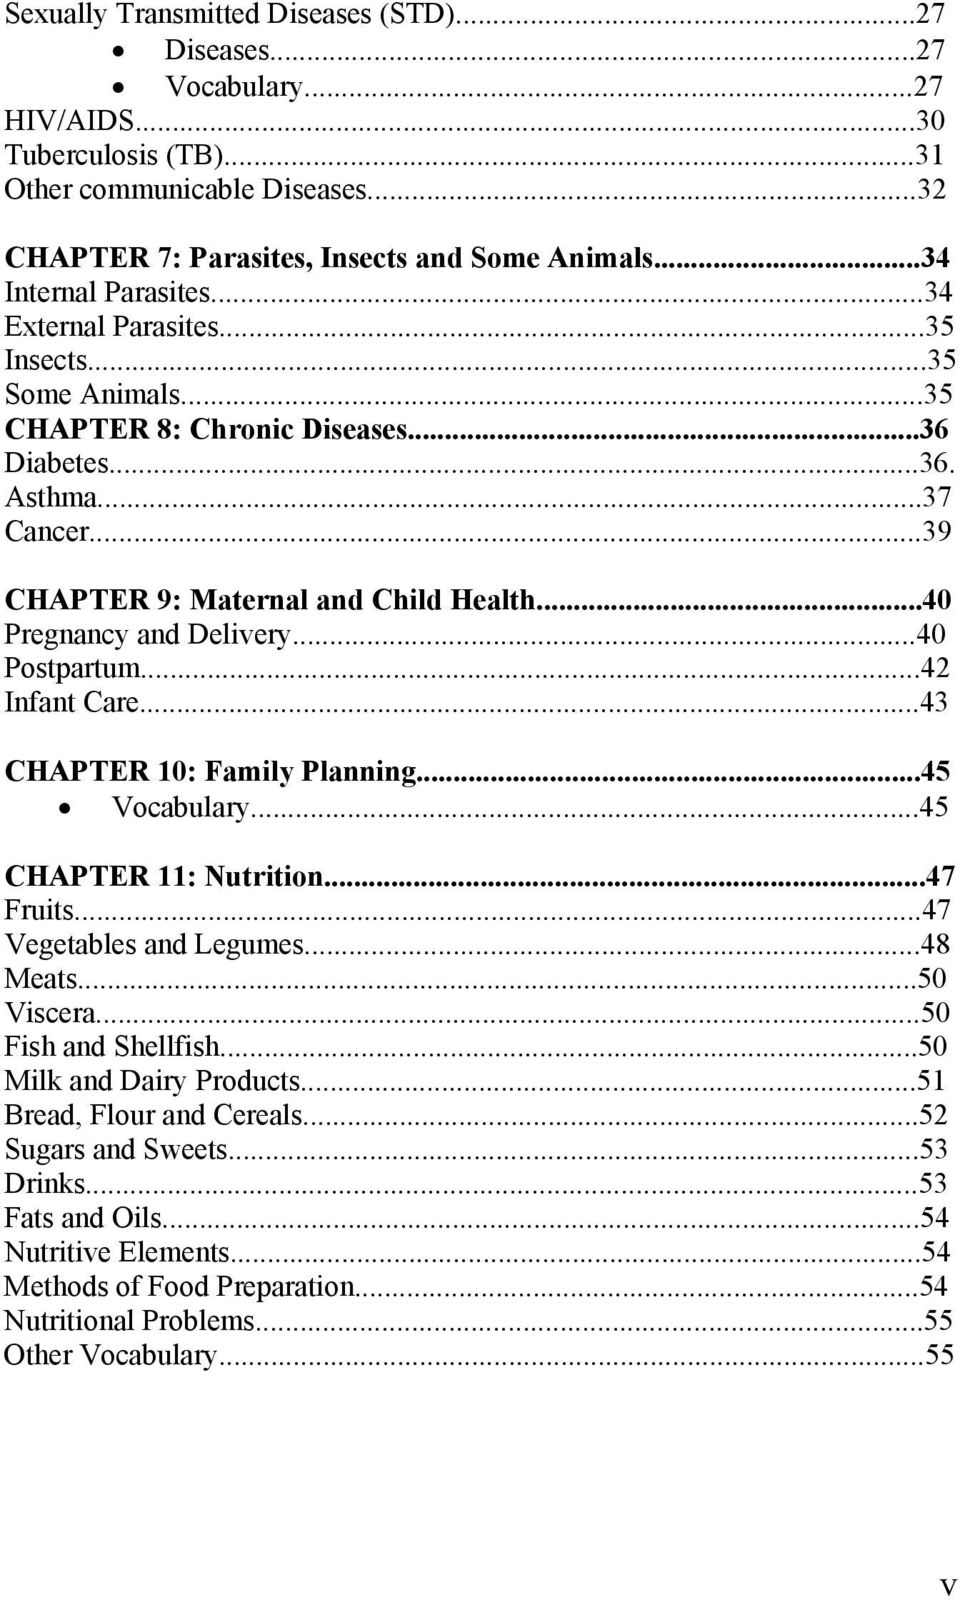 ..40 Pregnancy and Delivery...40 Postpartum...42 Infant Care...43 CHAPTER 10: Family Planning...45 Vocabulary...45 CHAPTER 11: Nutrition...47 Fruits...47 Vegetables and Legumes...48 Meats...50 Viscera.